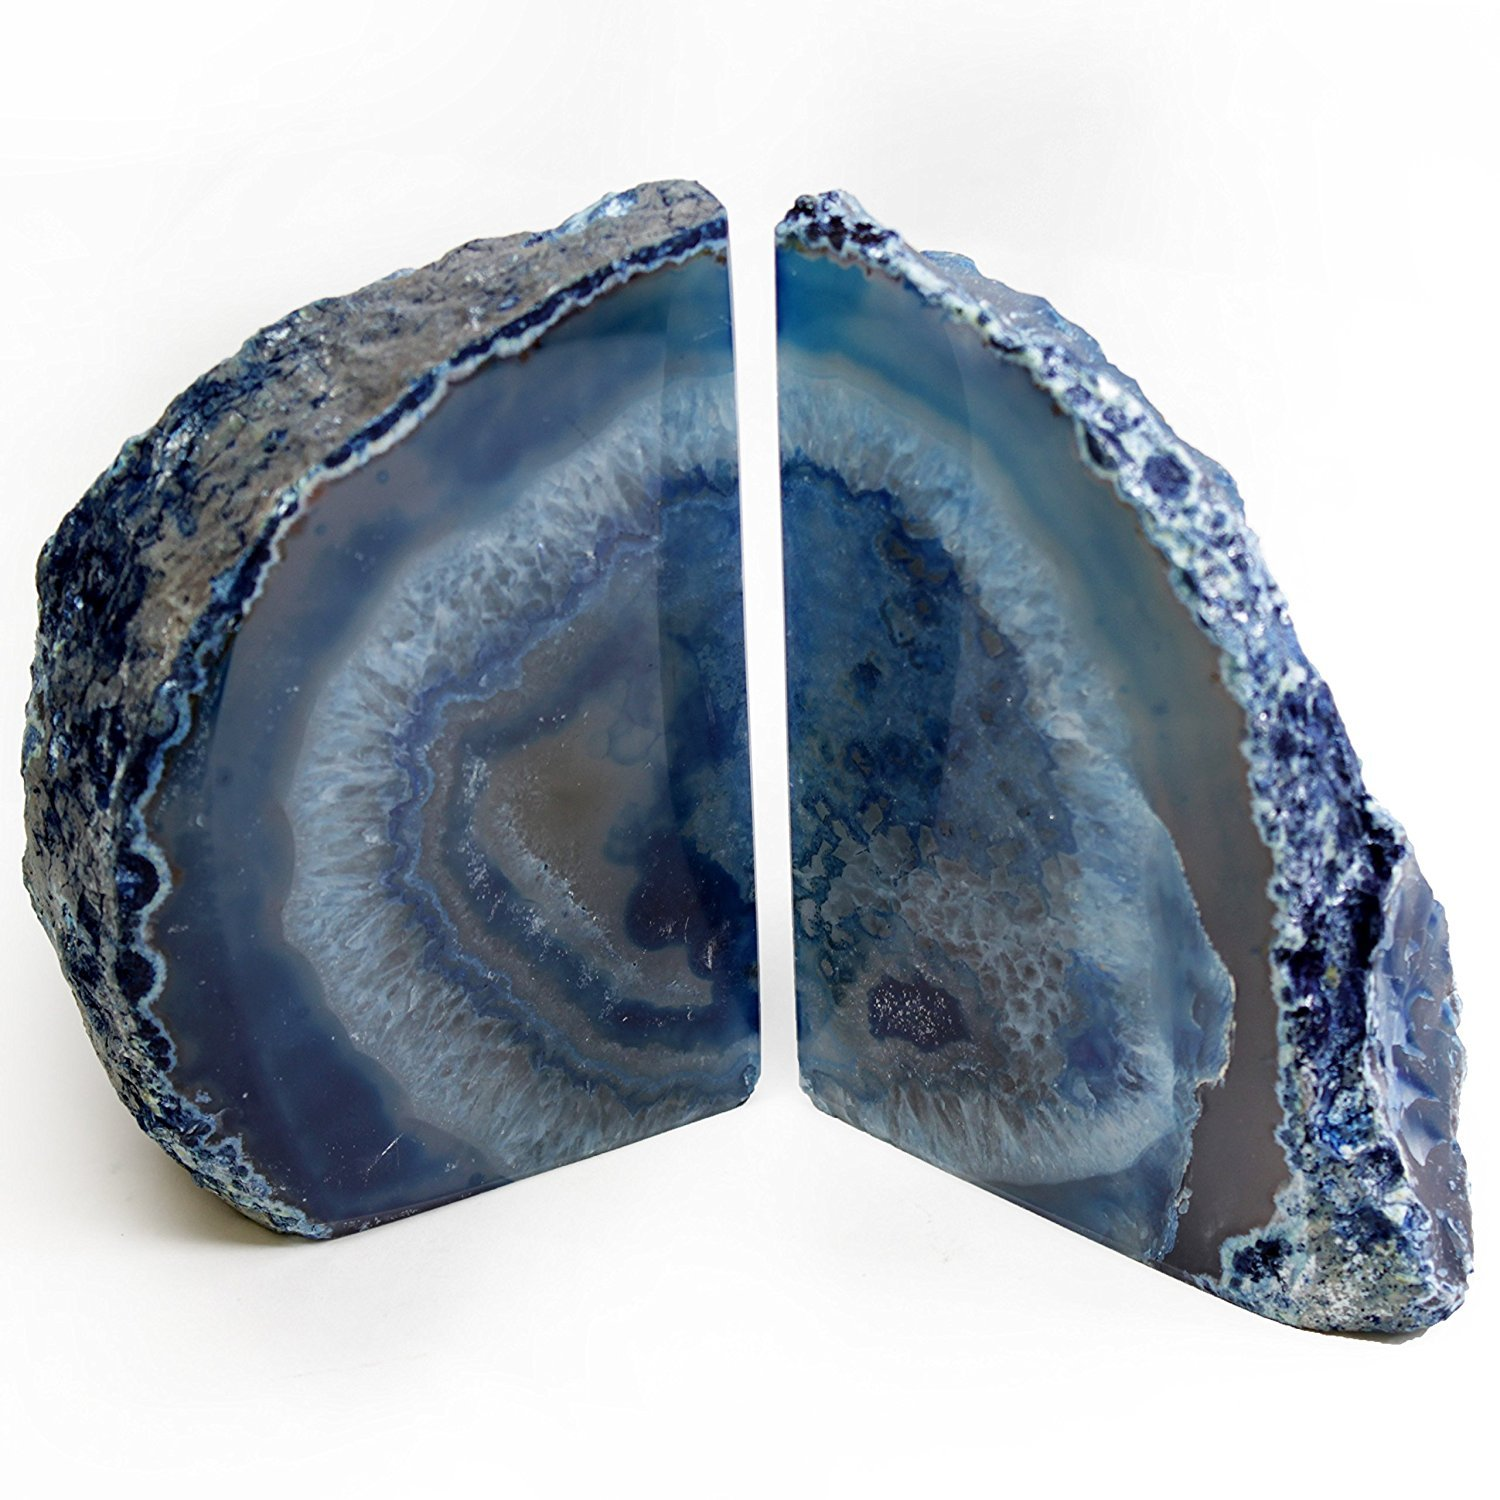 DIA Sold As Shown: Blue Agate Bookends Large Size (BU1) by LE